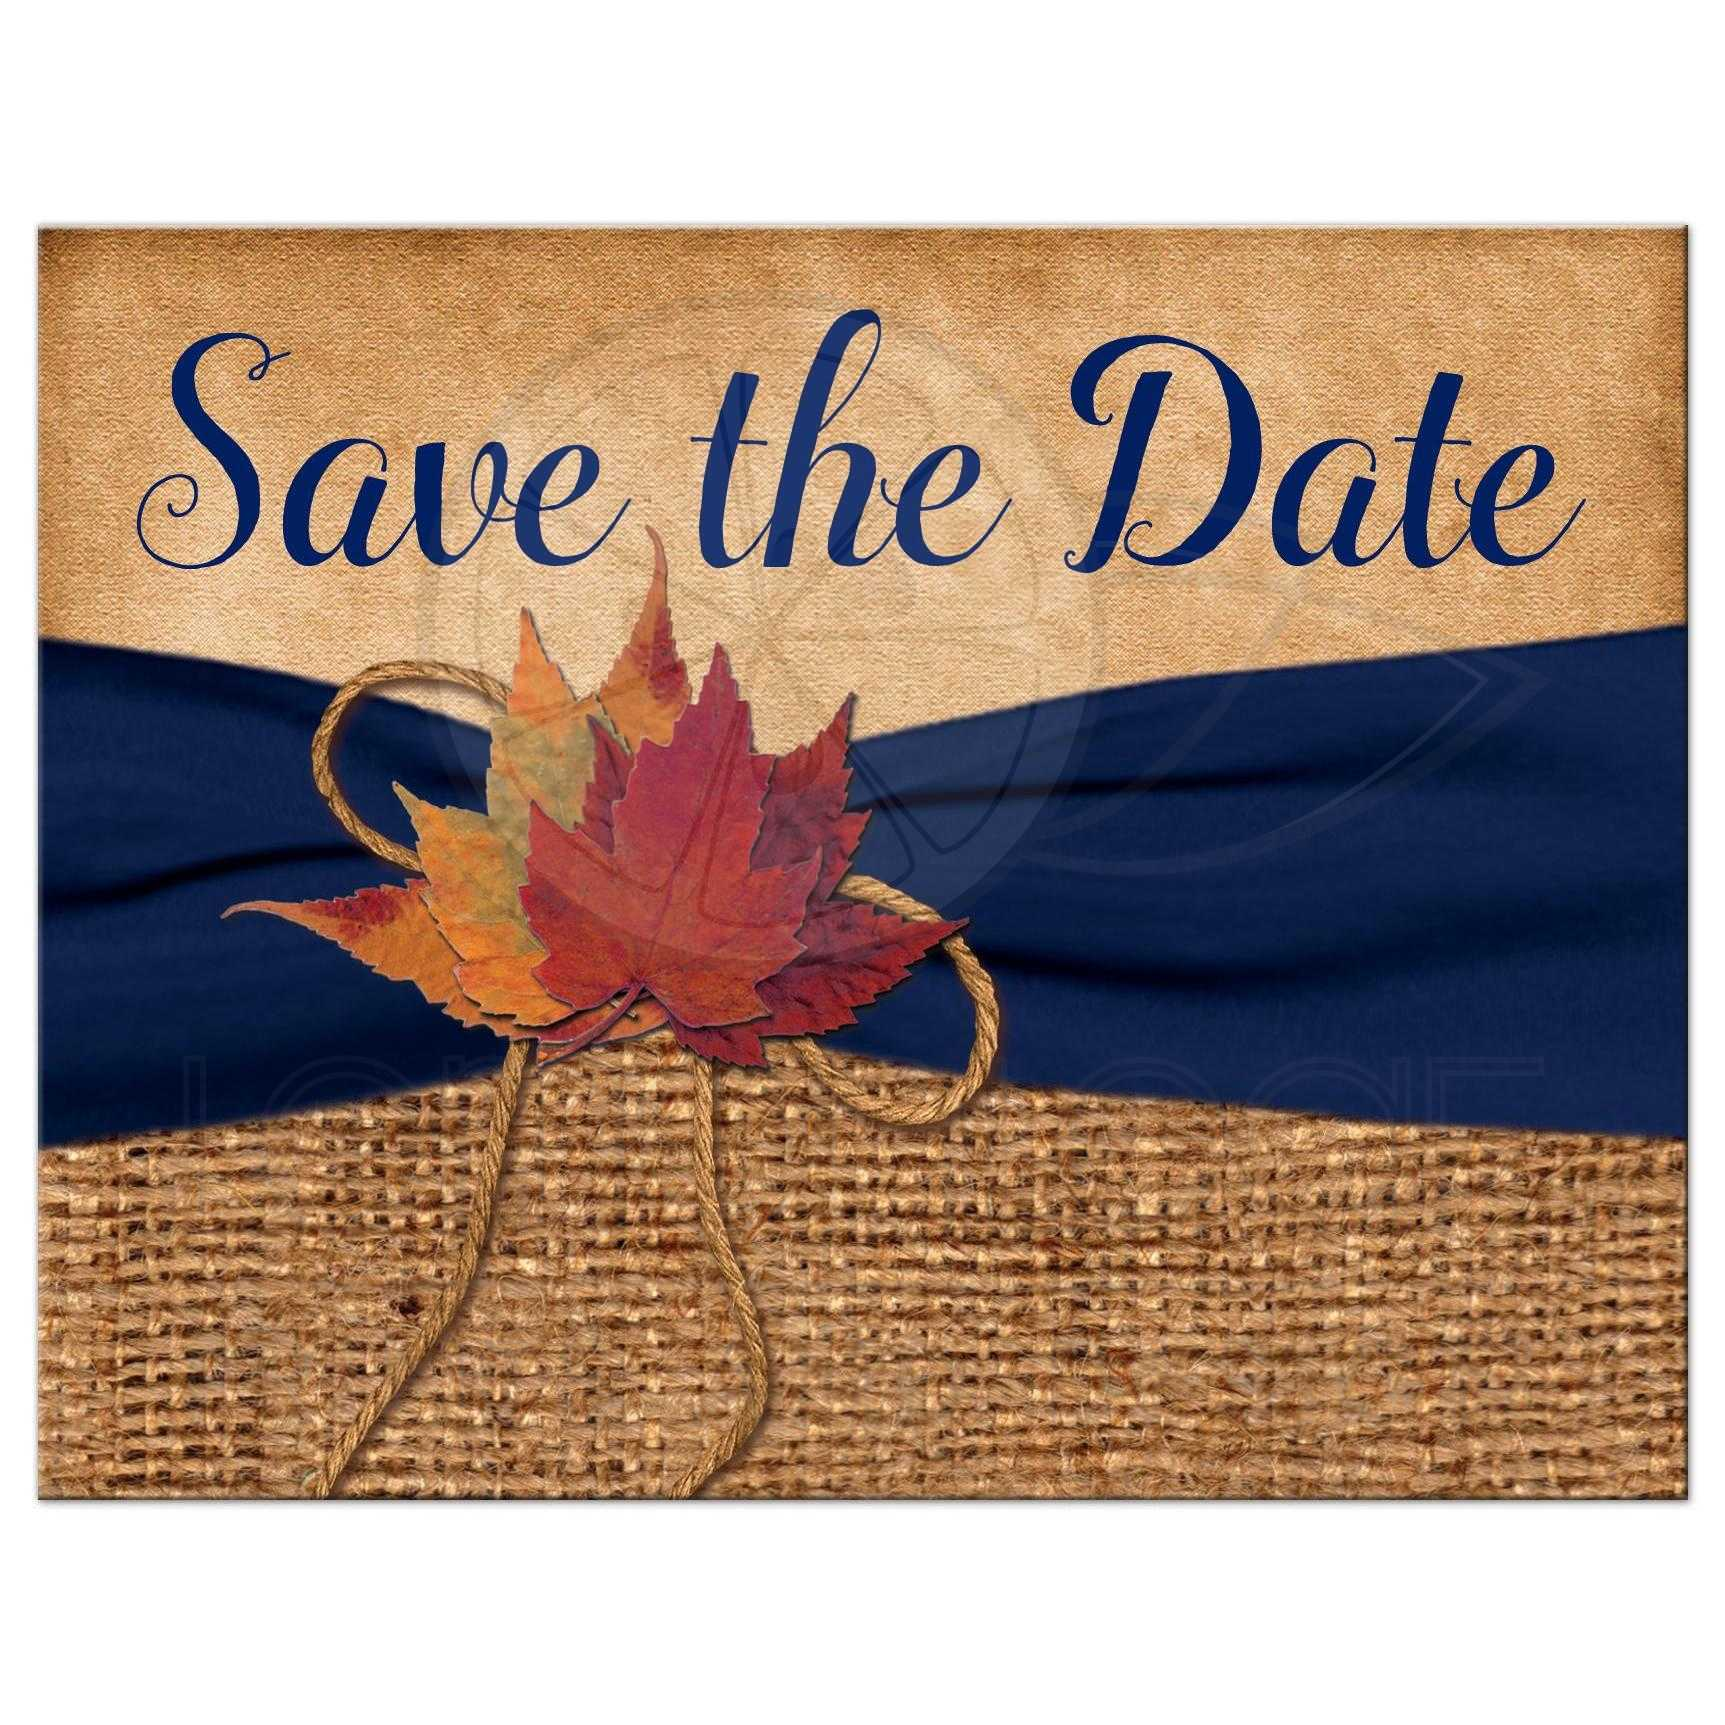 Rustic photo save the date card autumn leaves simulated burlap rustic brown burlap photo template wedding save the date postcard with a navy blue colored pronofoot35fo Images